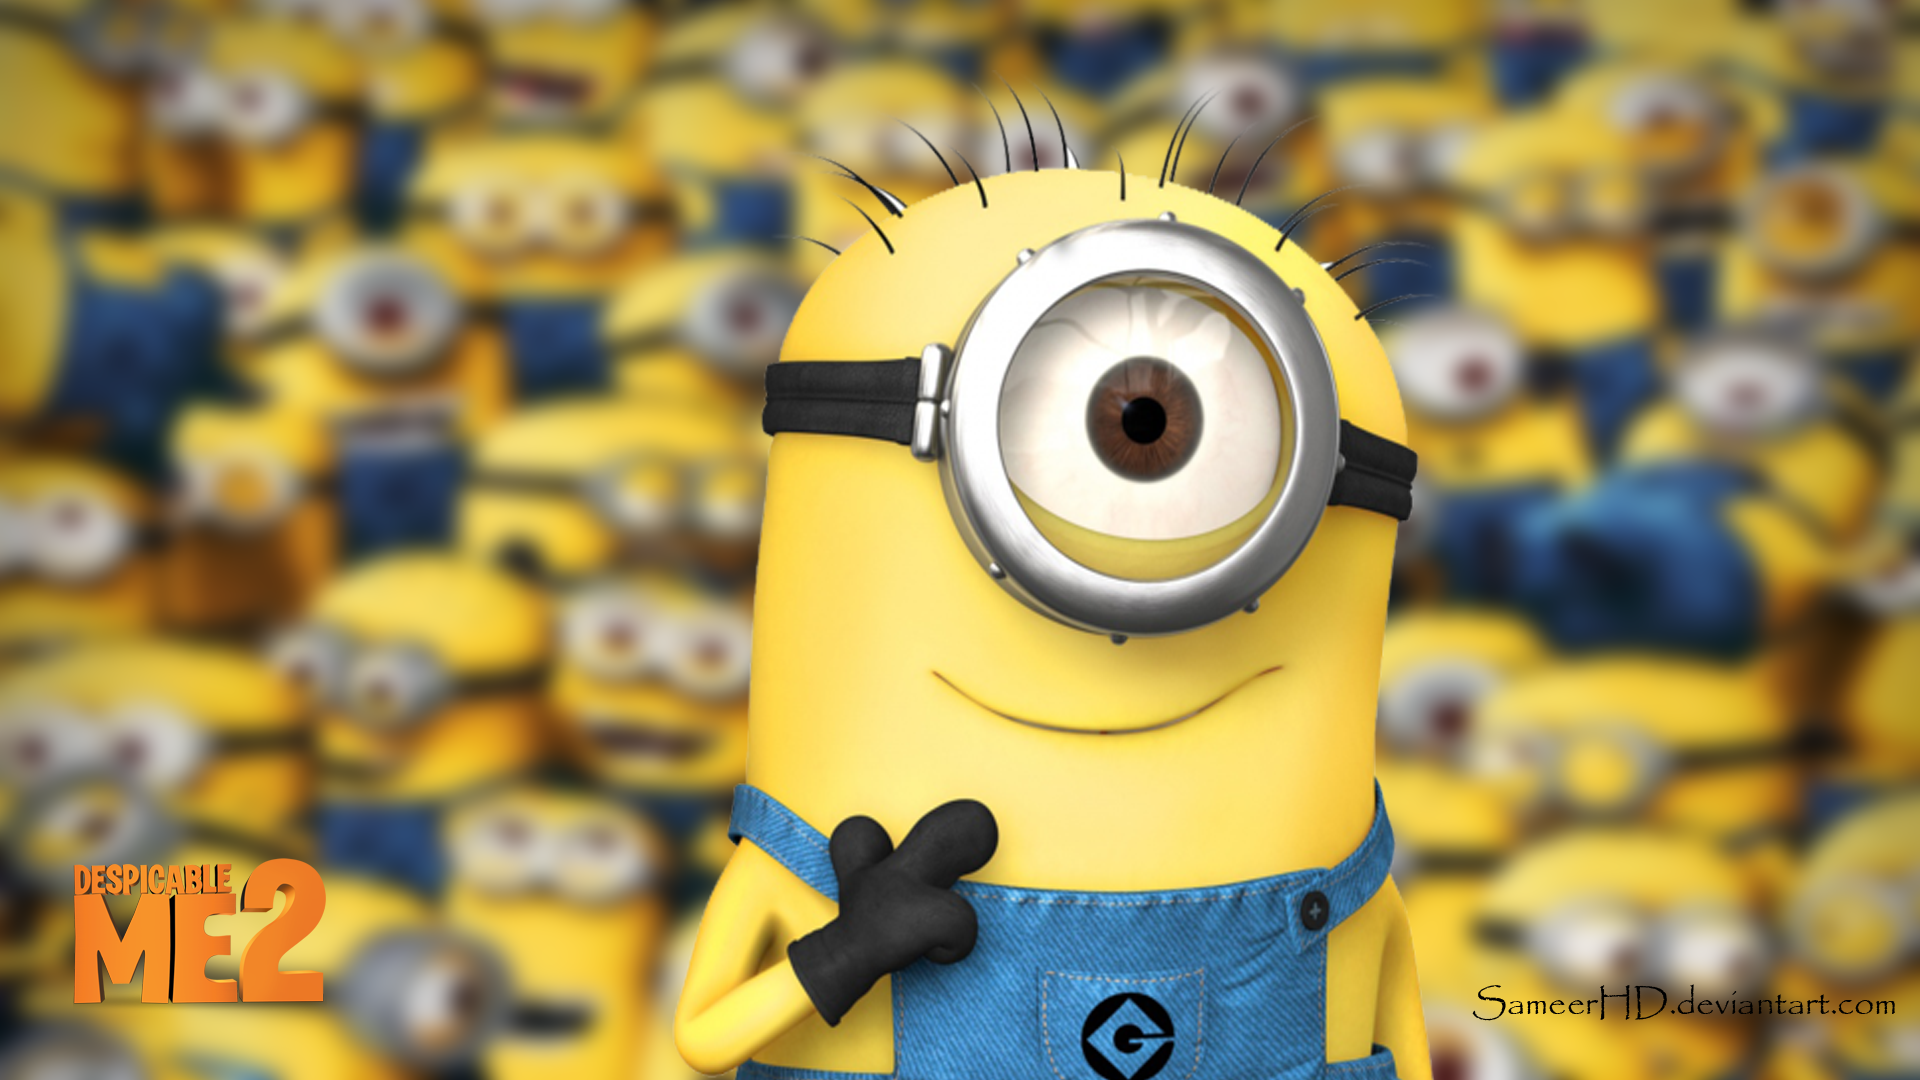 Despicable Me 2 Minion Wallpaper by SameerHD on DeviantArt